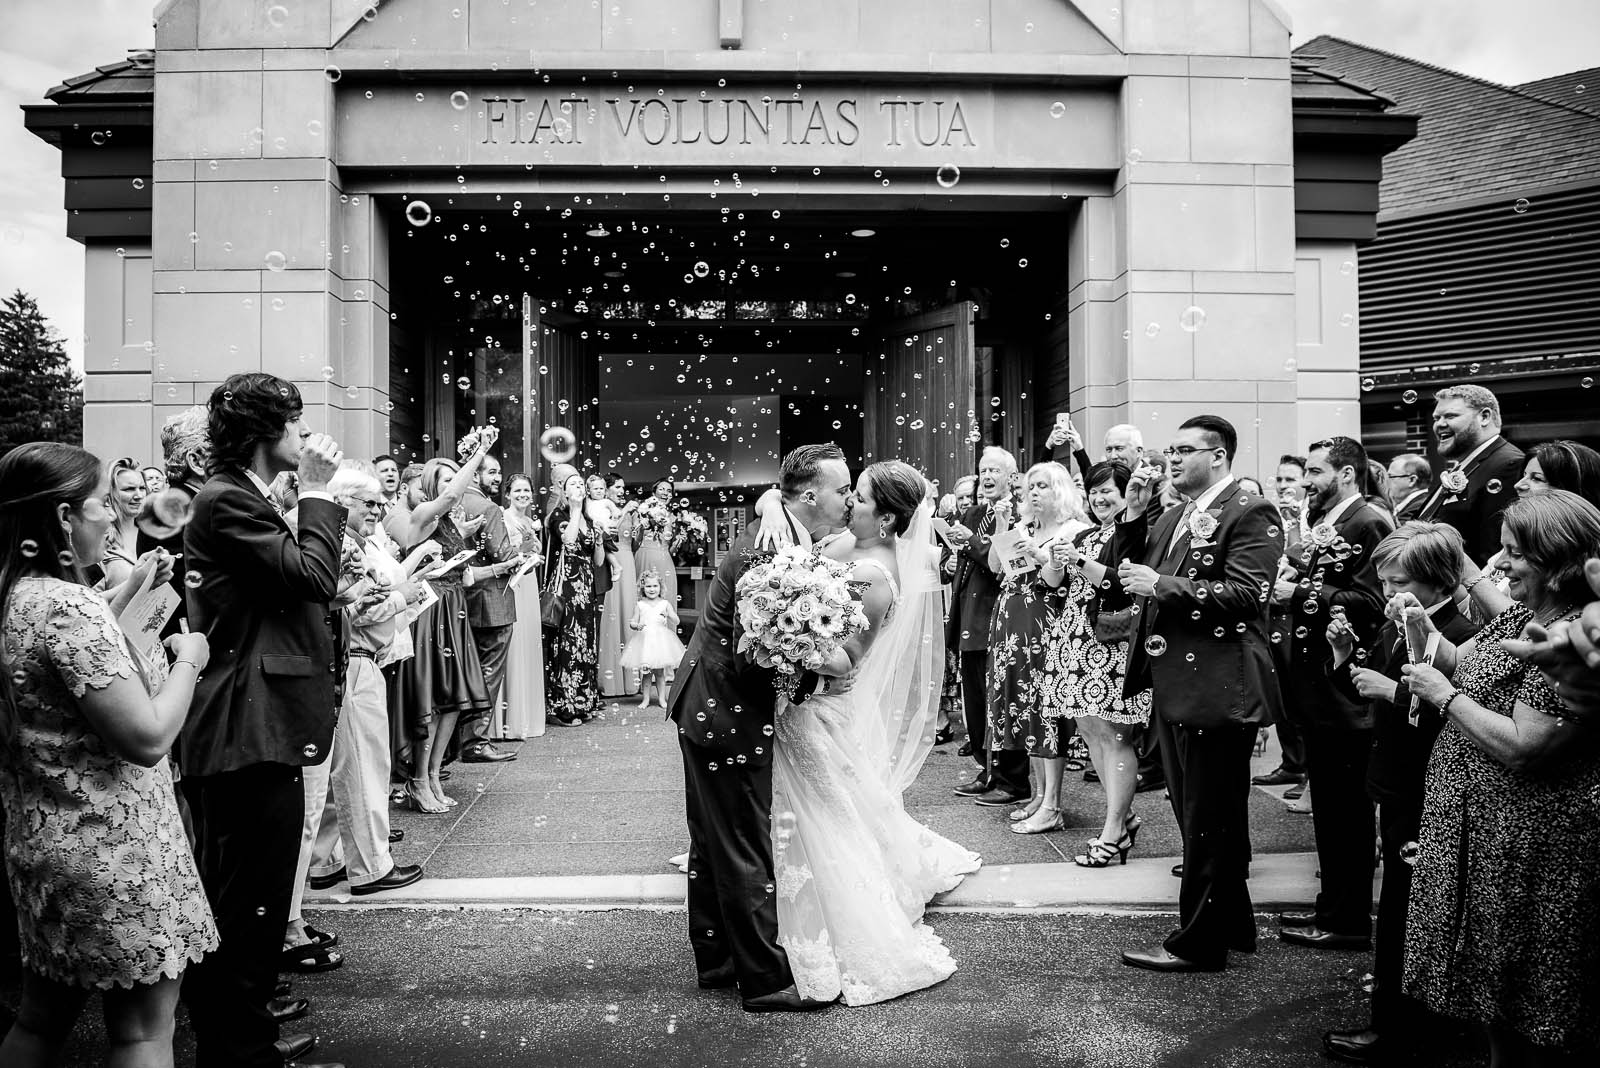 Eric_and_Christy_Photography_Blog_Wedding_Paige_Eric-20